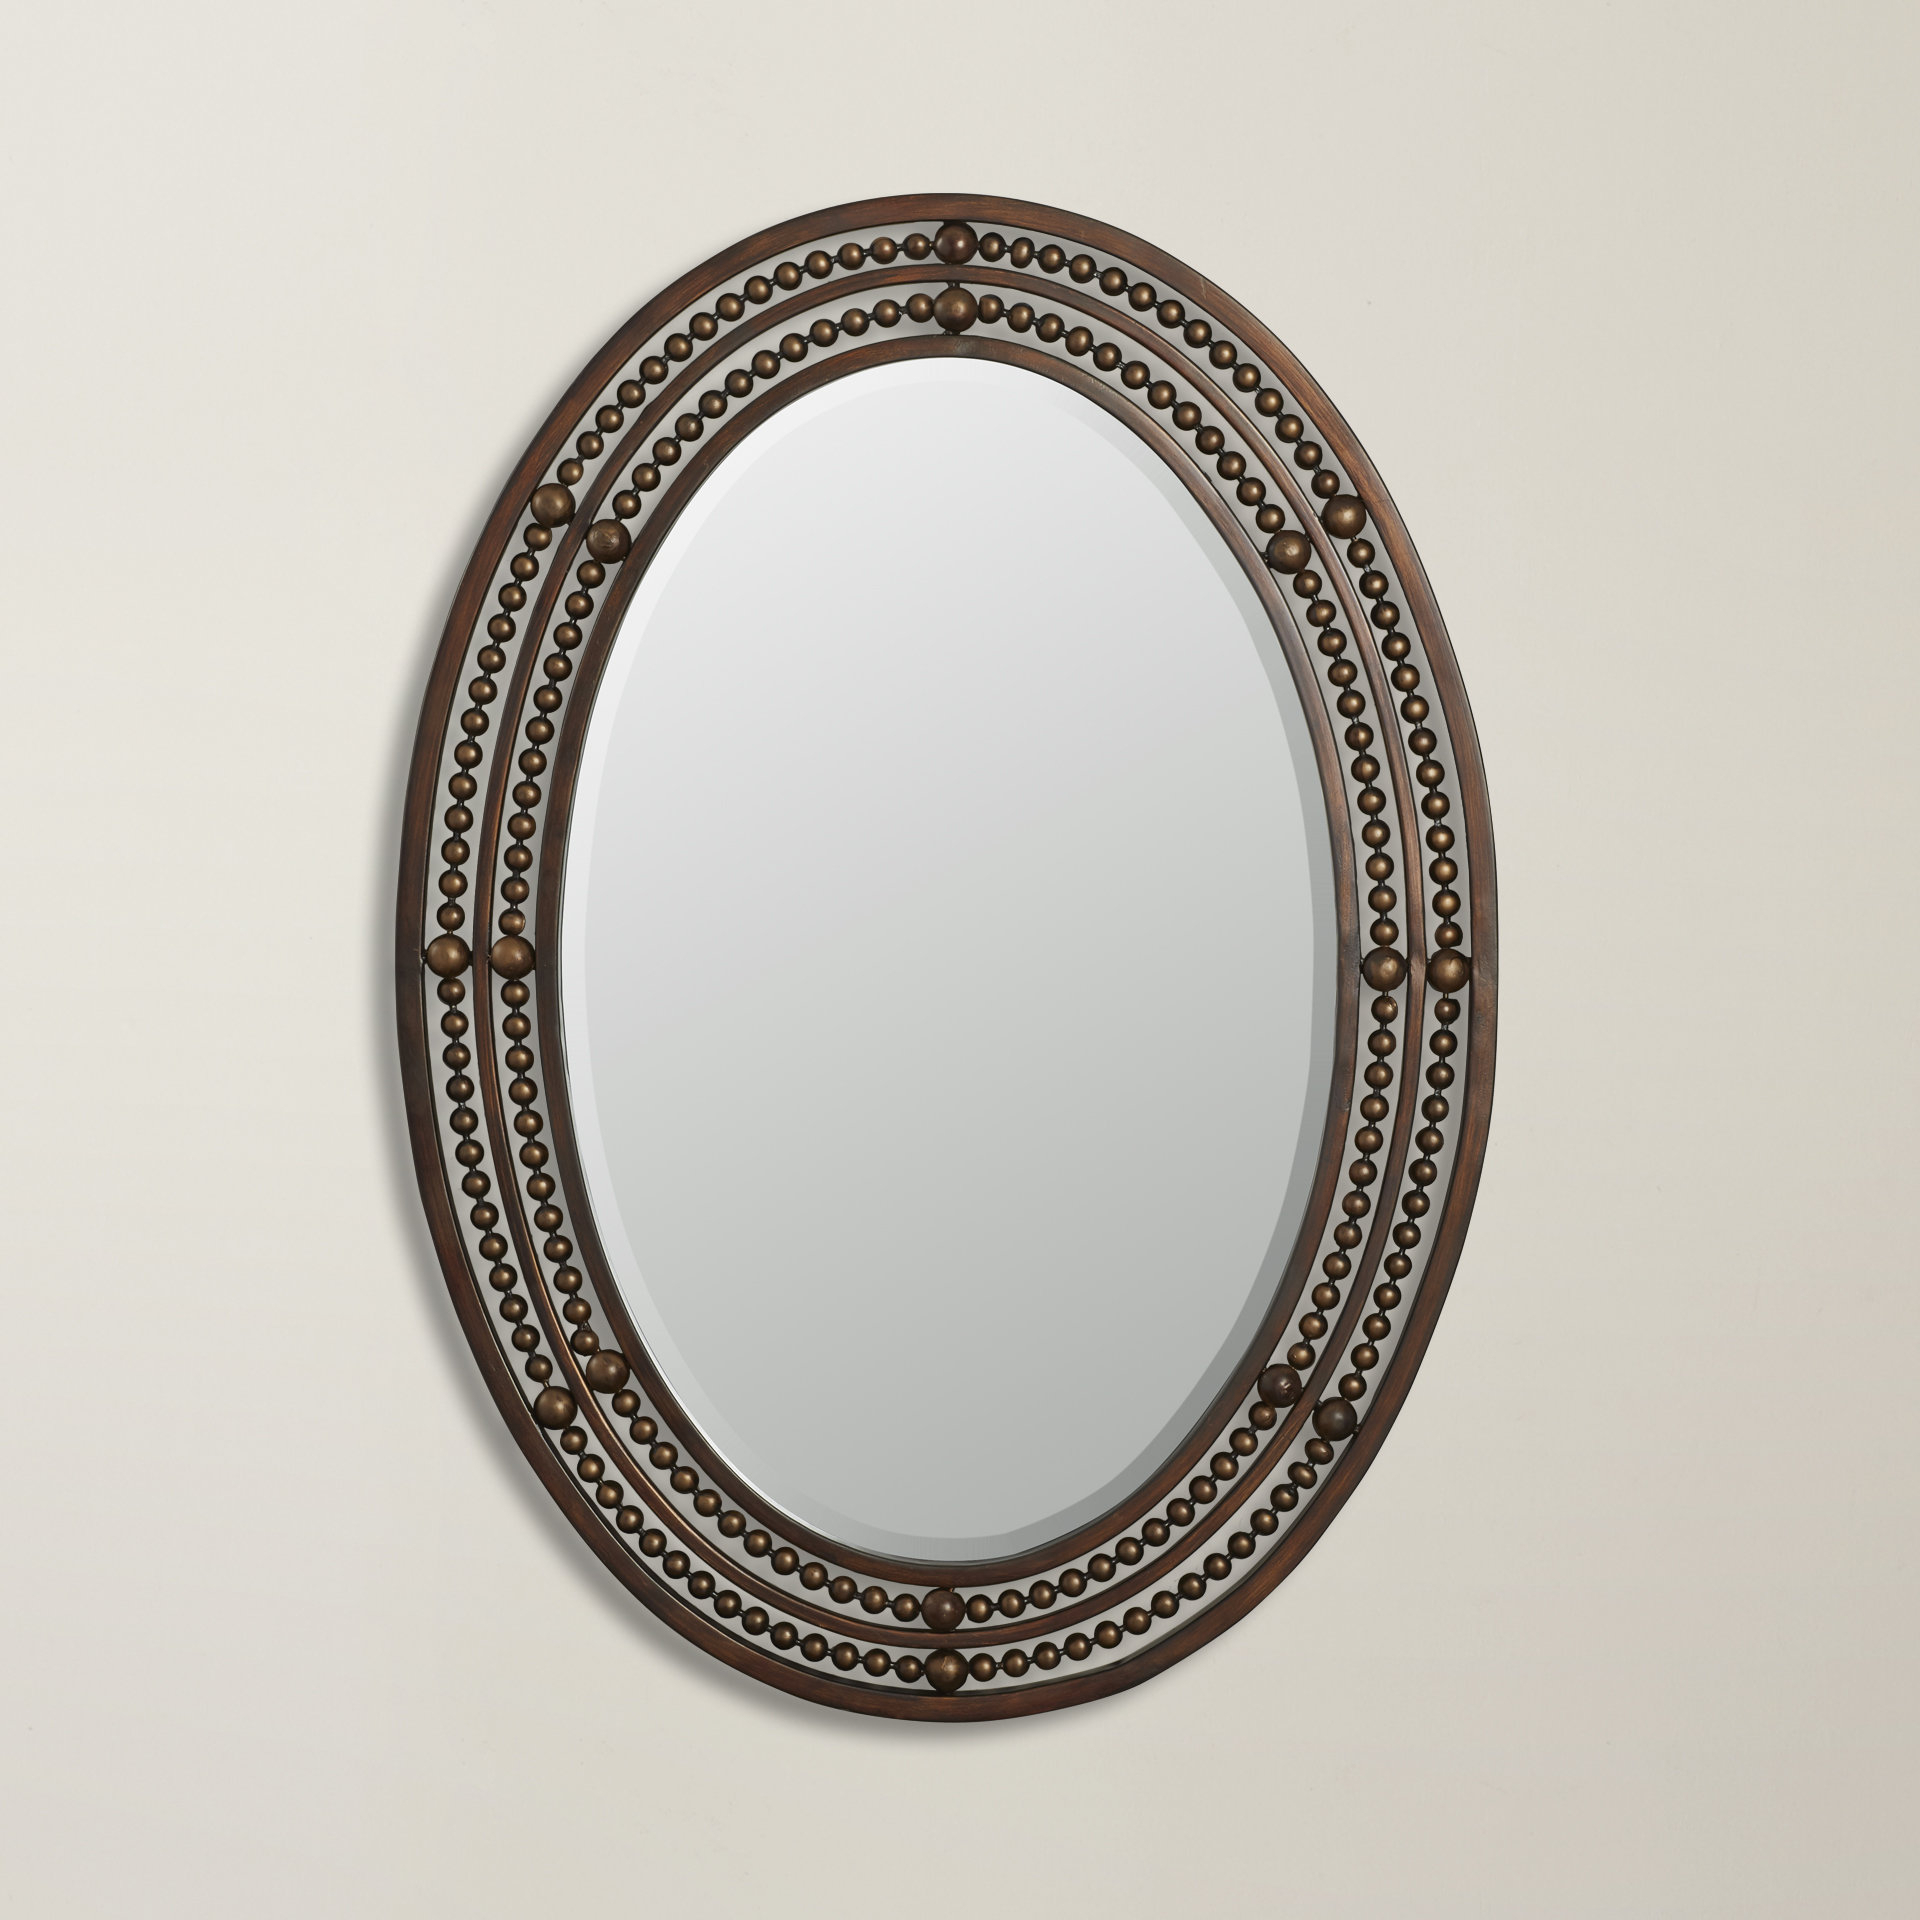 Leeper Oval Wall Mirror For Best And Newest Oval Wall Mirrors (View 8 of 20)